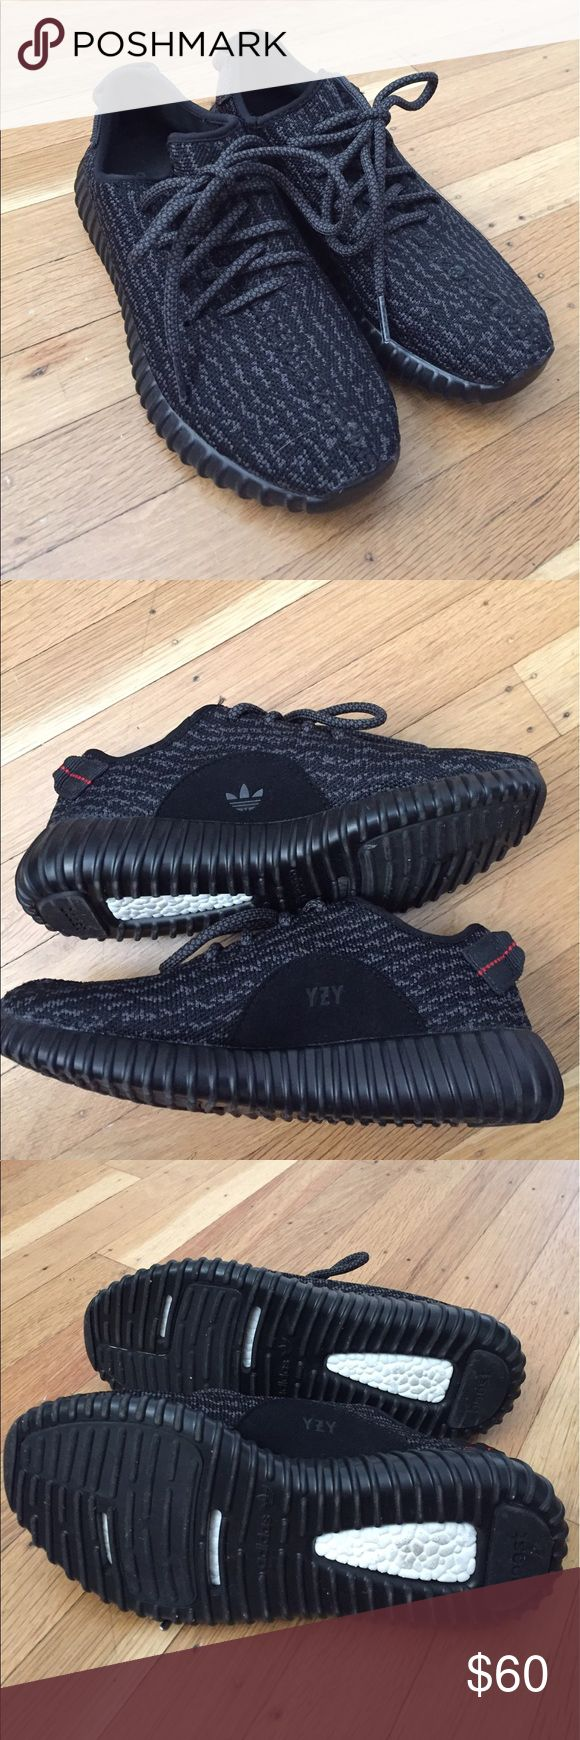 Yeezy boost 350 pirate black non authentic ( fake ) yeezy boost 350 pirate black. No box no receipt. Size 5 in men's 7 in women's. runs true to size. Yeezy Shoes Sneakers